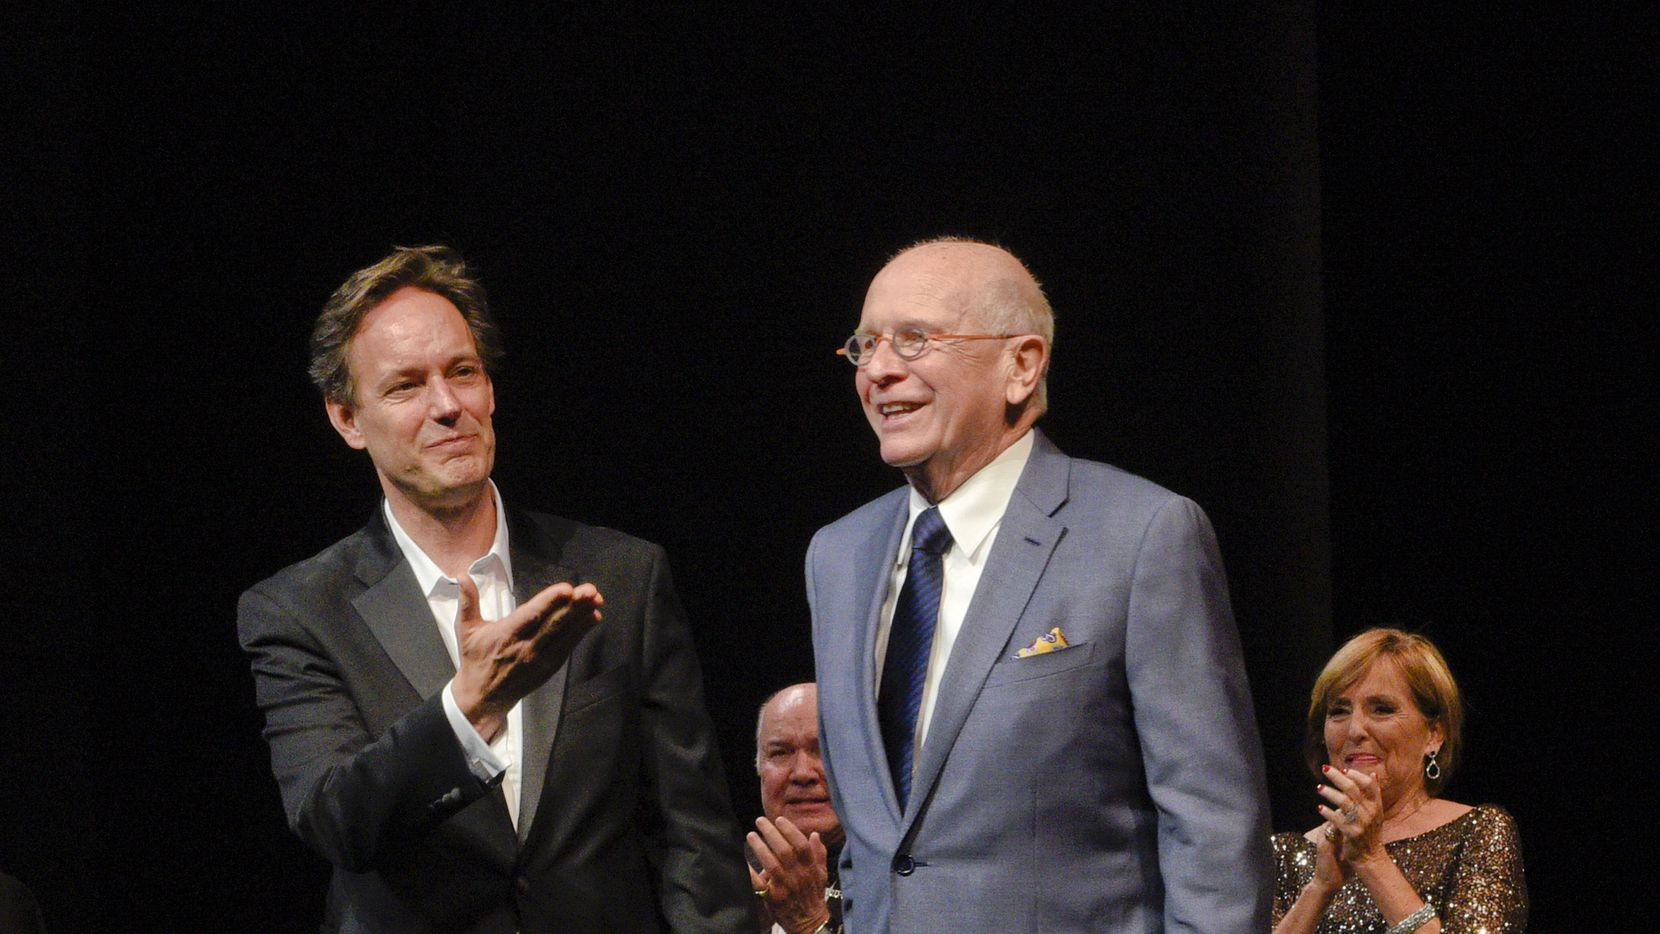 """Composer Jake Heggie, director Jack O'Brien, playwright Terrence McNally and mezzo-soprano Frederica von Stade during a curtain call for """"Great Scott,"""" which premiered at the Dallas Opera in 2015."""